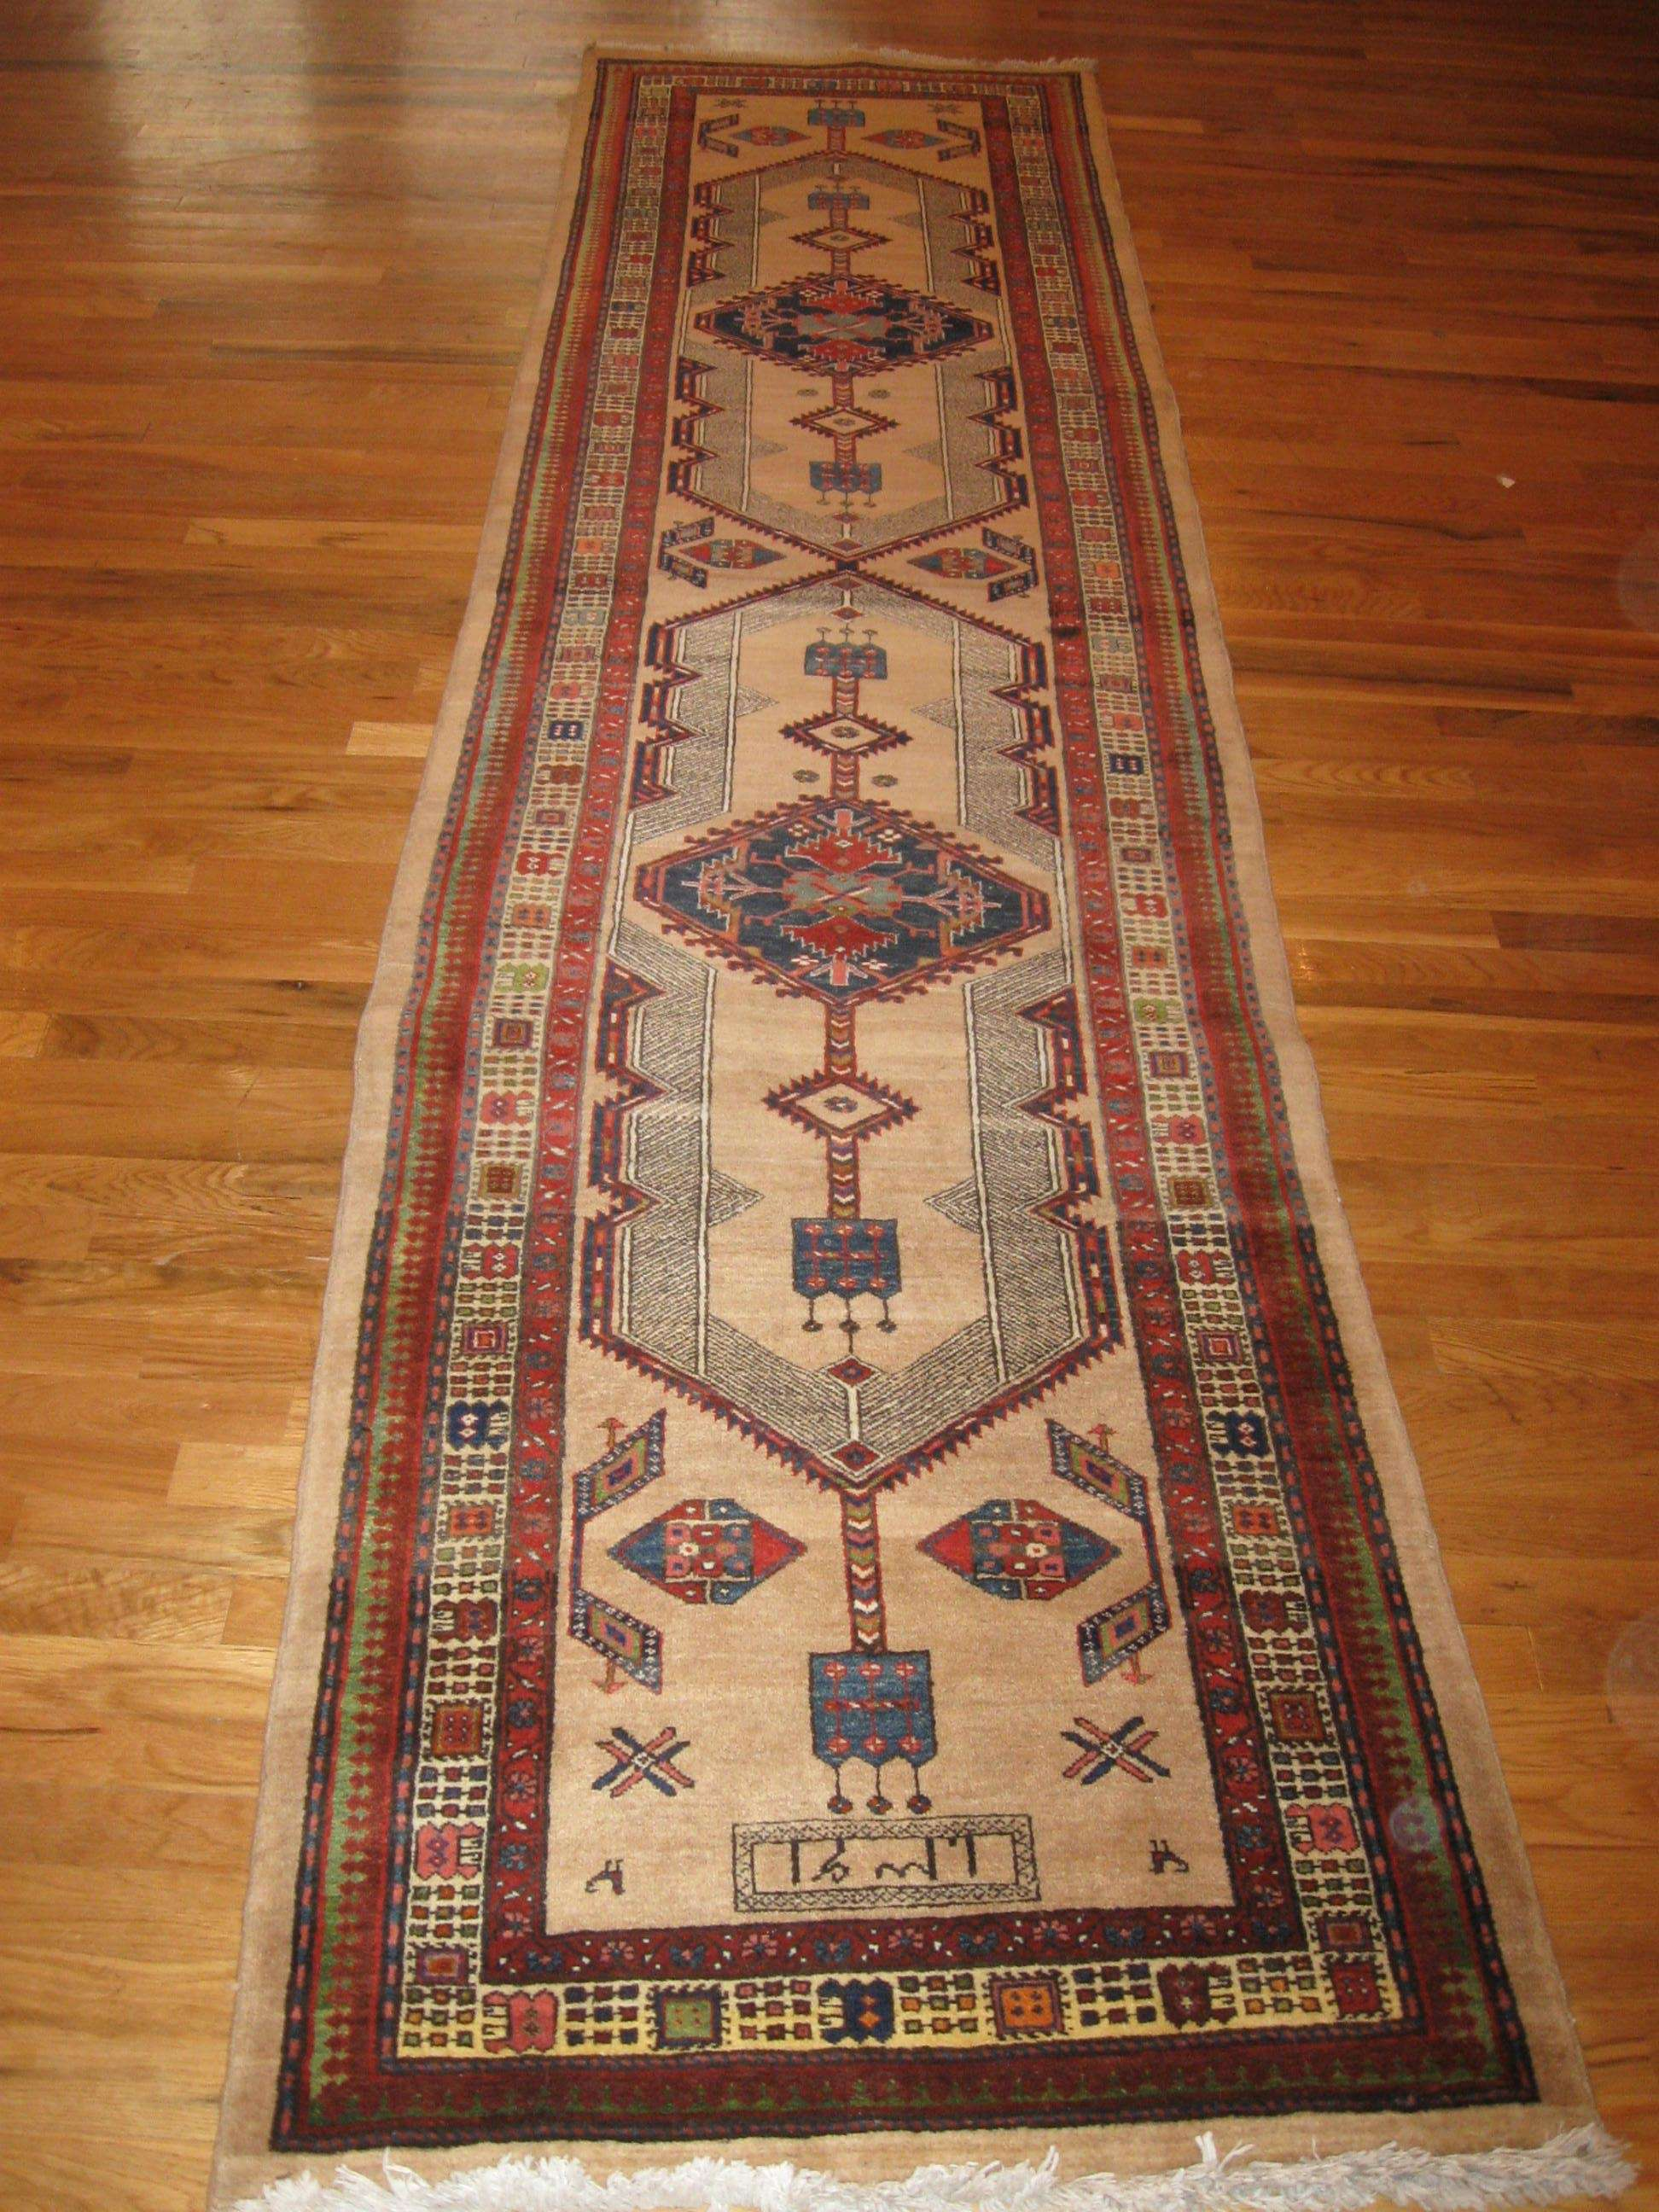 Serab Persian Rug | Dated 1361 AH = 1942 AD